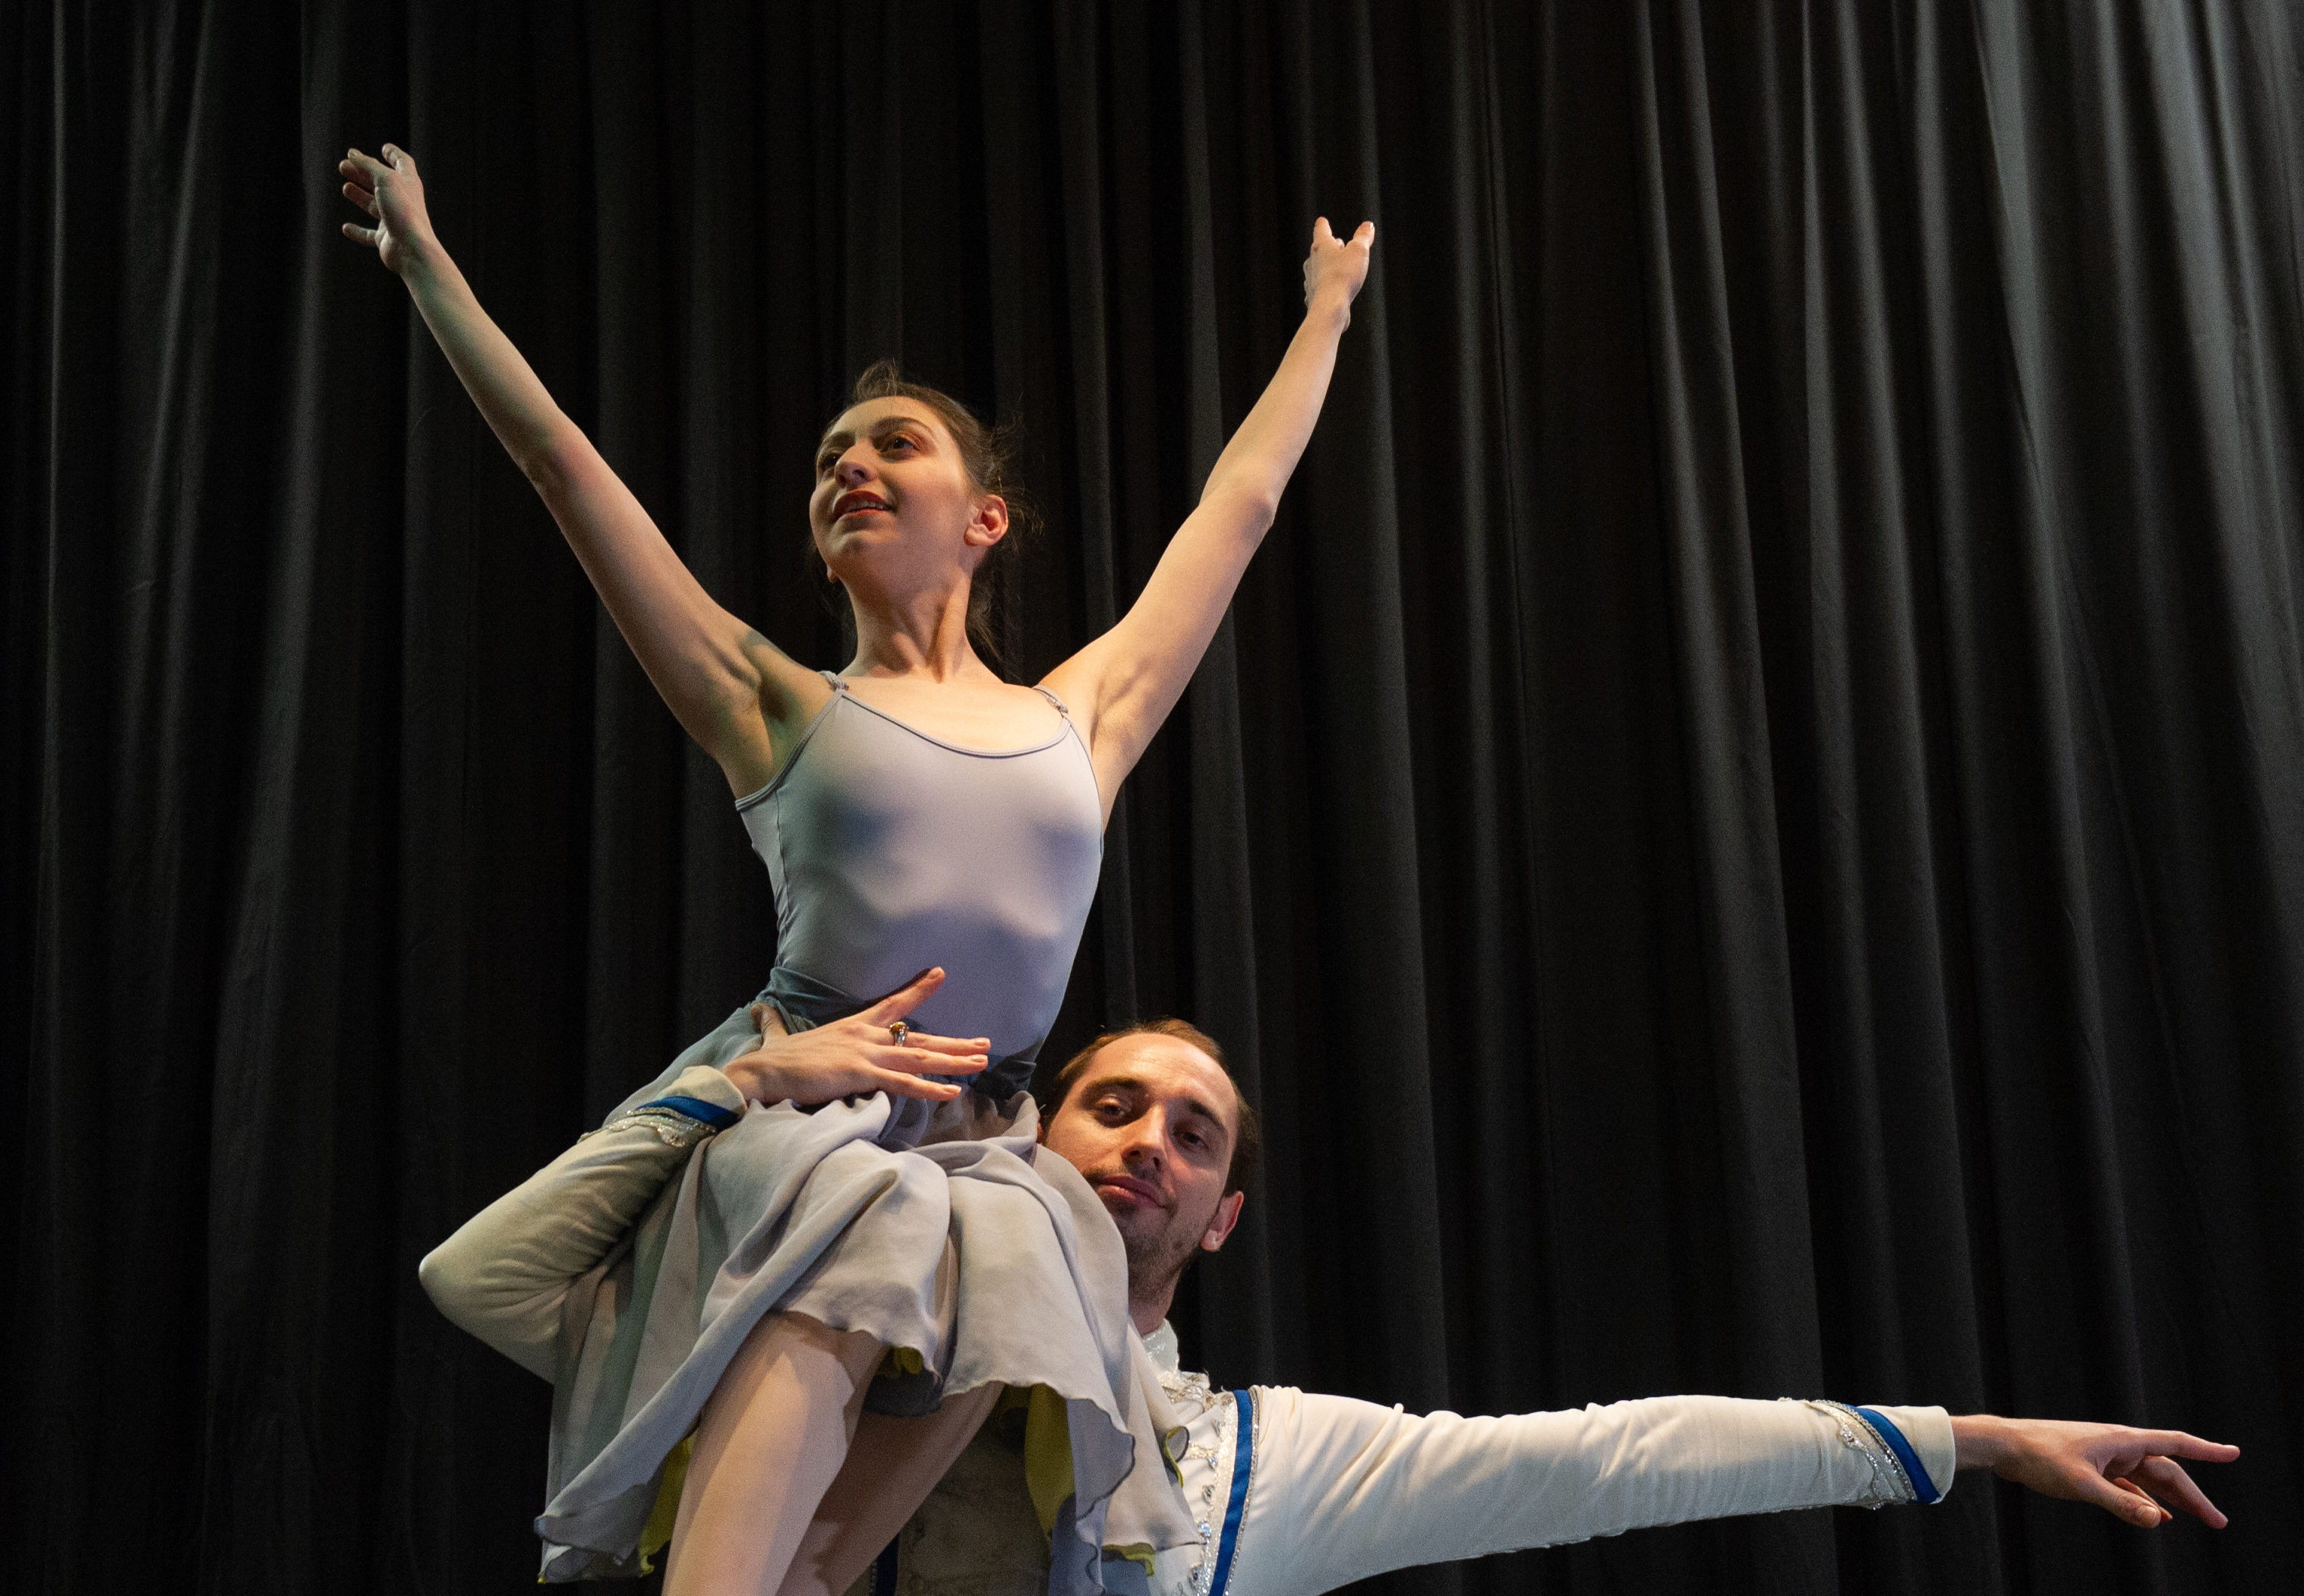 Dancers from the Russian State Ballet are performing at Speyside High School as part of a long-standing relationship between the group and the village. Pictured: couple 1 - Polina Filippova and LLia couple 2 - Maria Dzotsenidze and Aleksandr Suldin   Pictures by JASON HEDGES